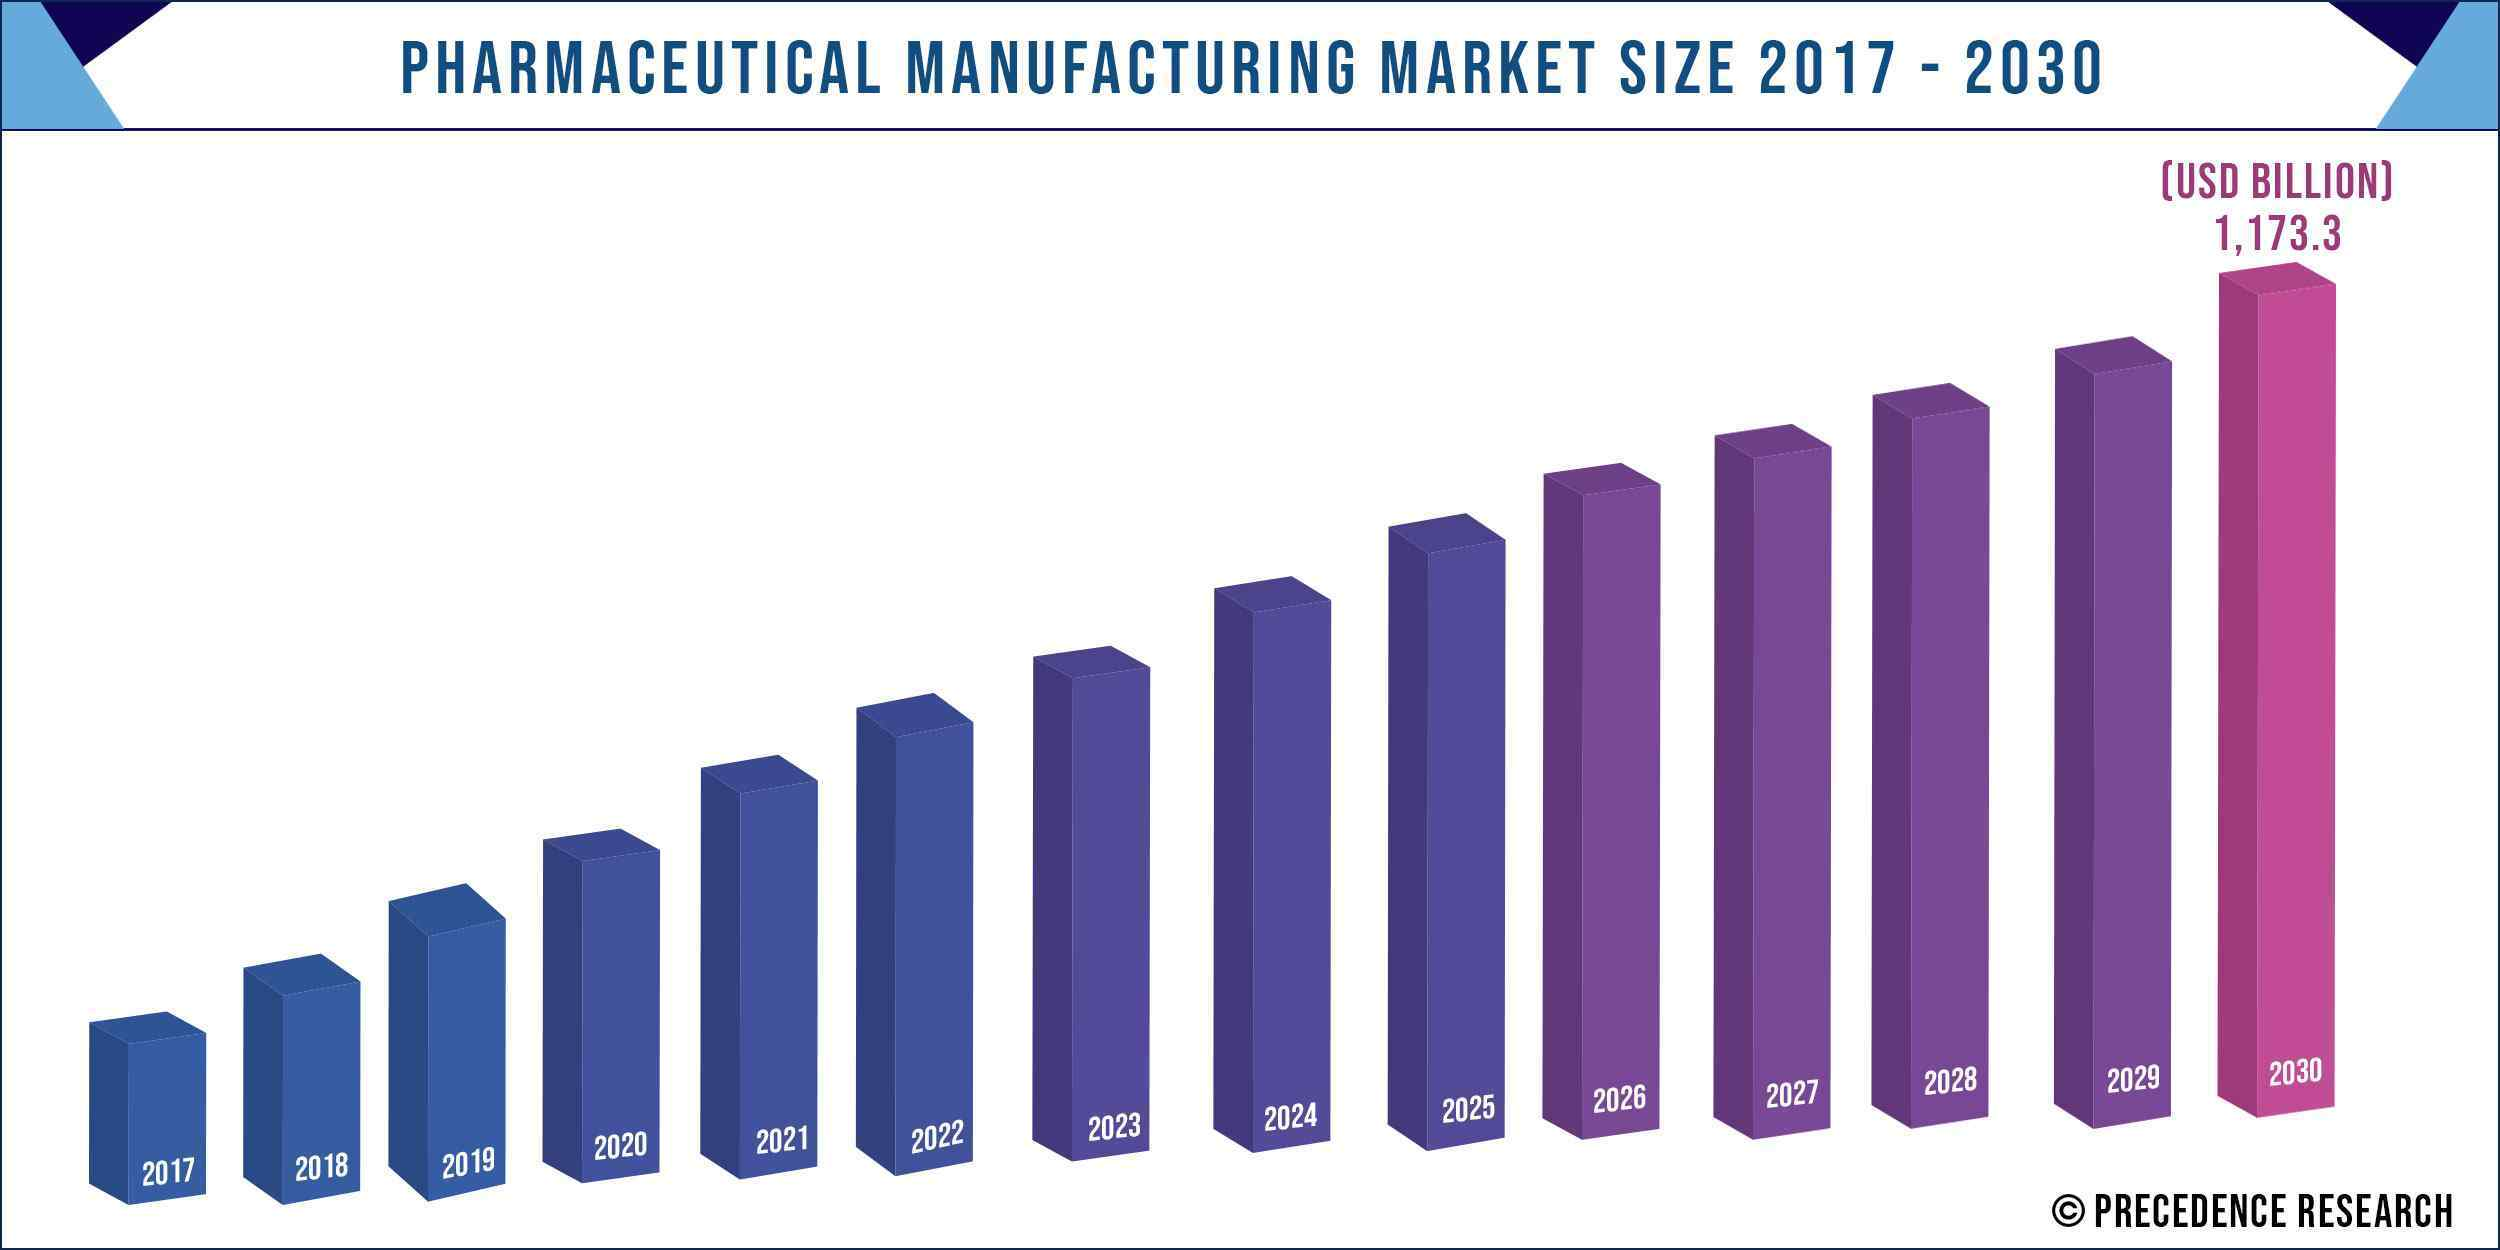 Pharmaceutical Manufacturing Market Size 2017 to 2030